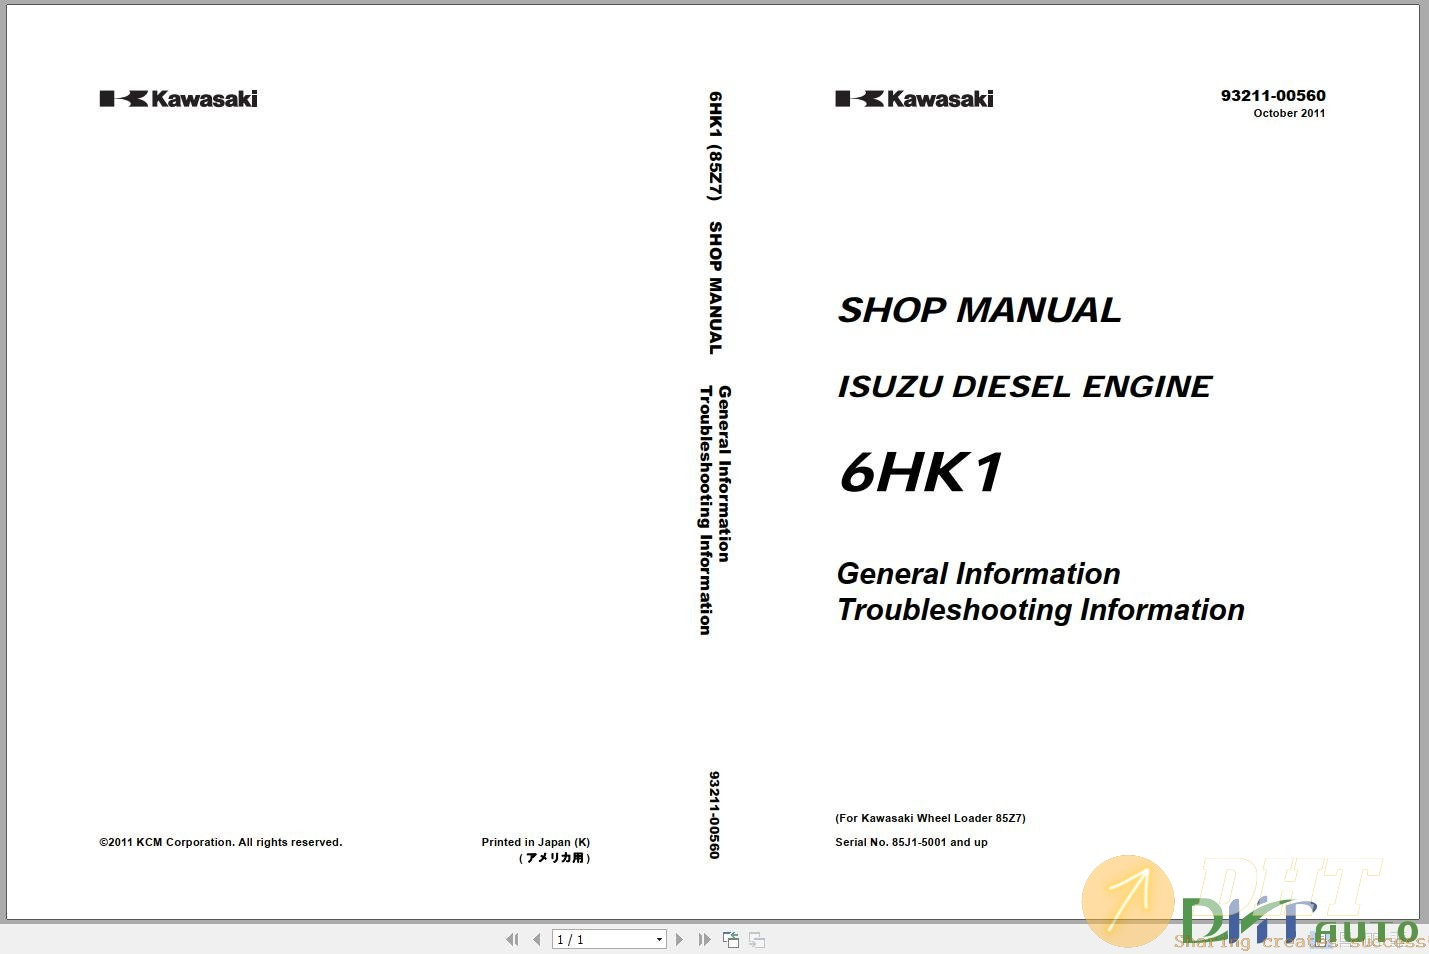 Kawasaki-Wheel-Loader-Workshop-Manual-Part-Manual-Full-Set-Update-2020-2.jpg